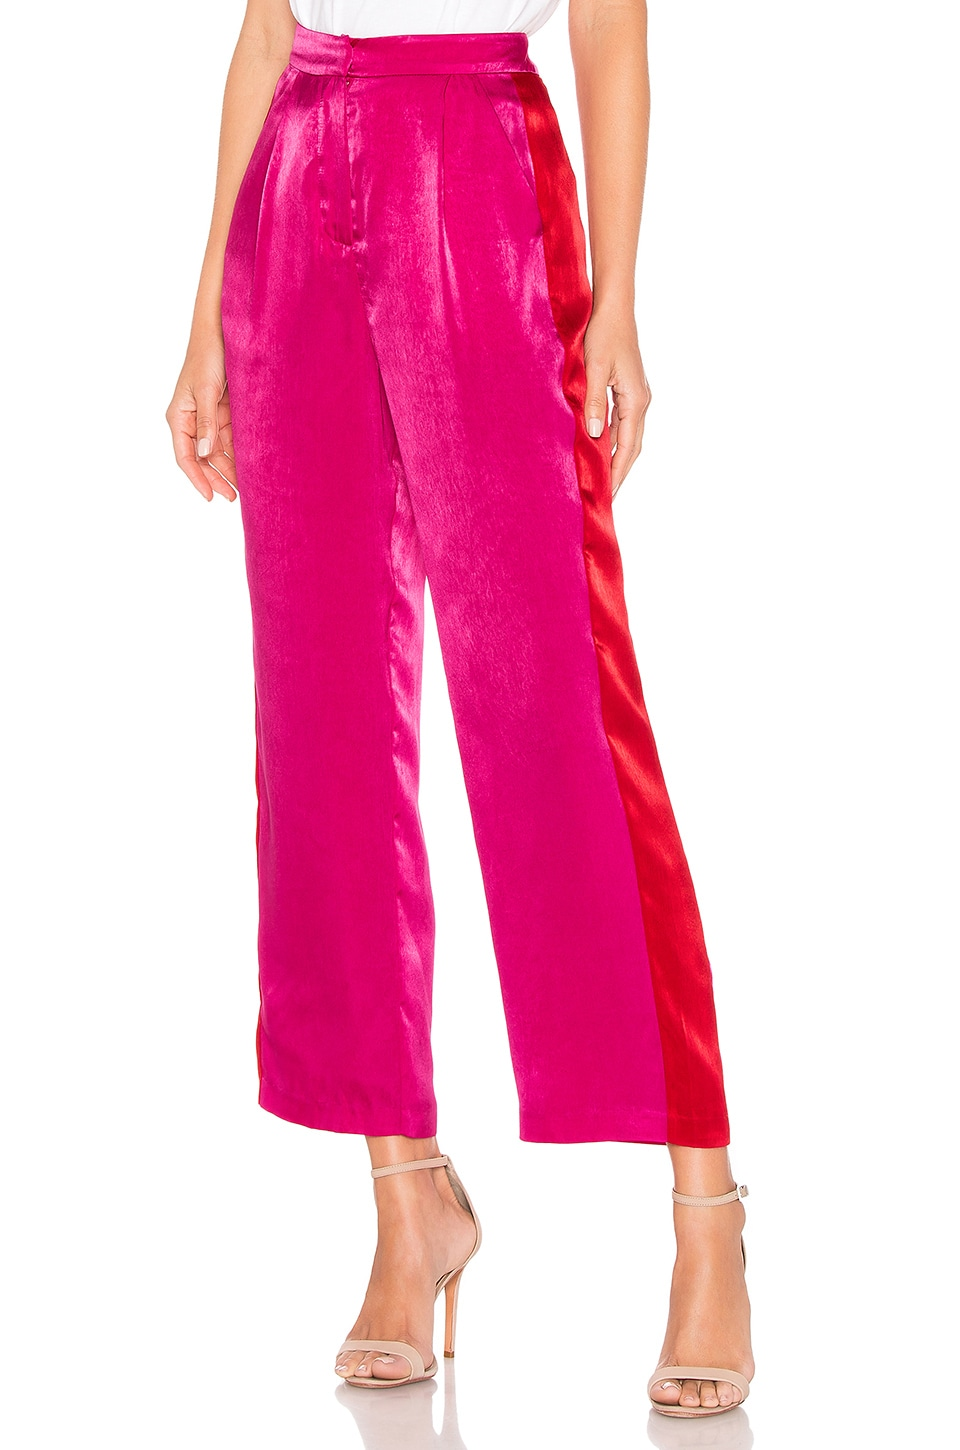 House of Harlow 1960 x REVOLVE Alessia Pant in Fuchsia